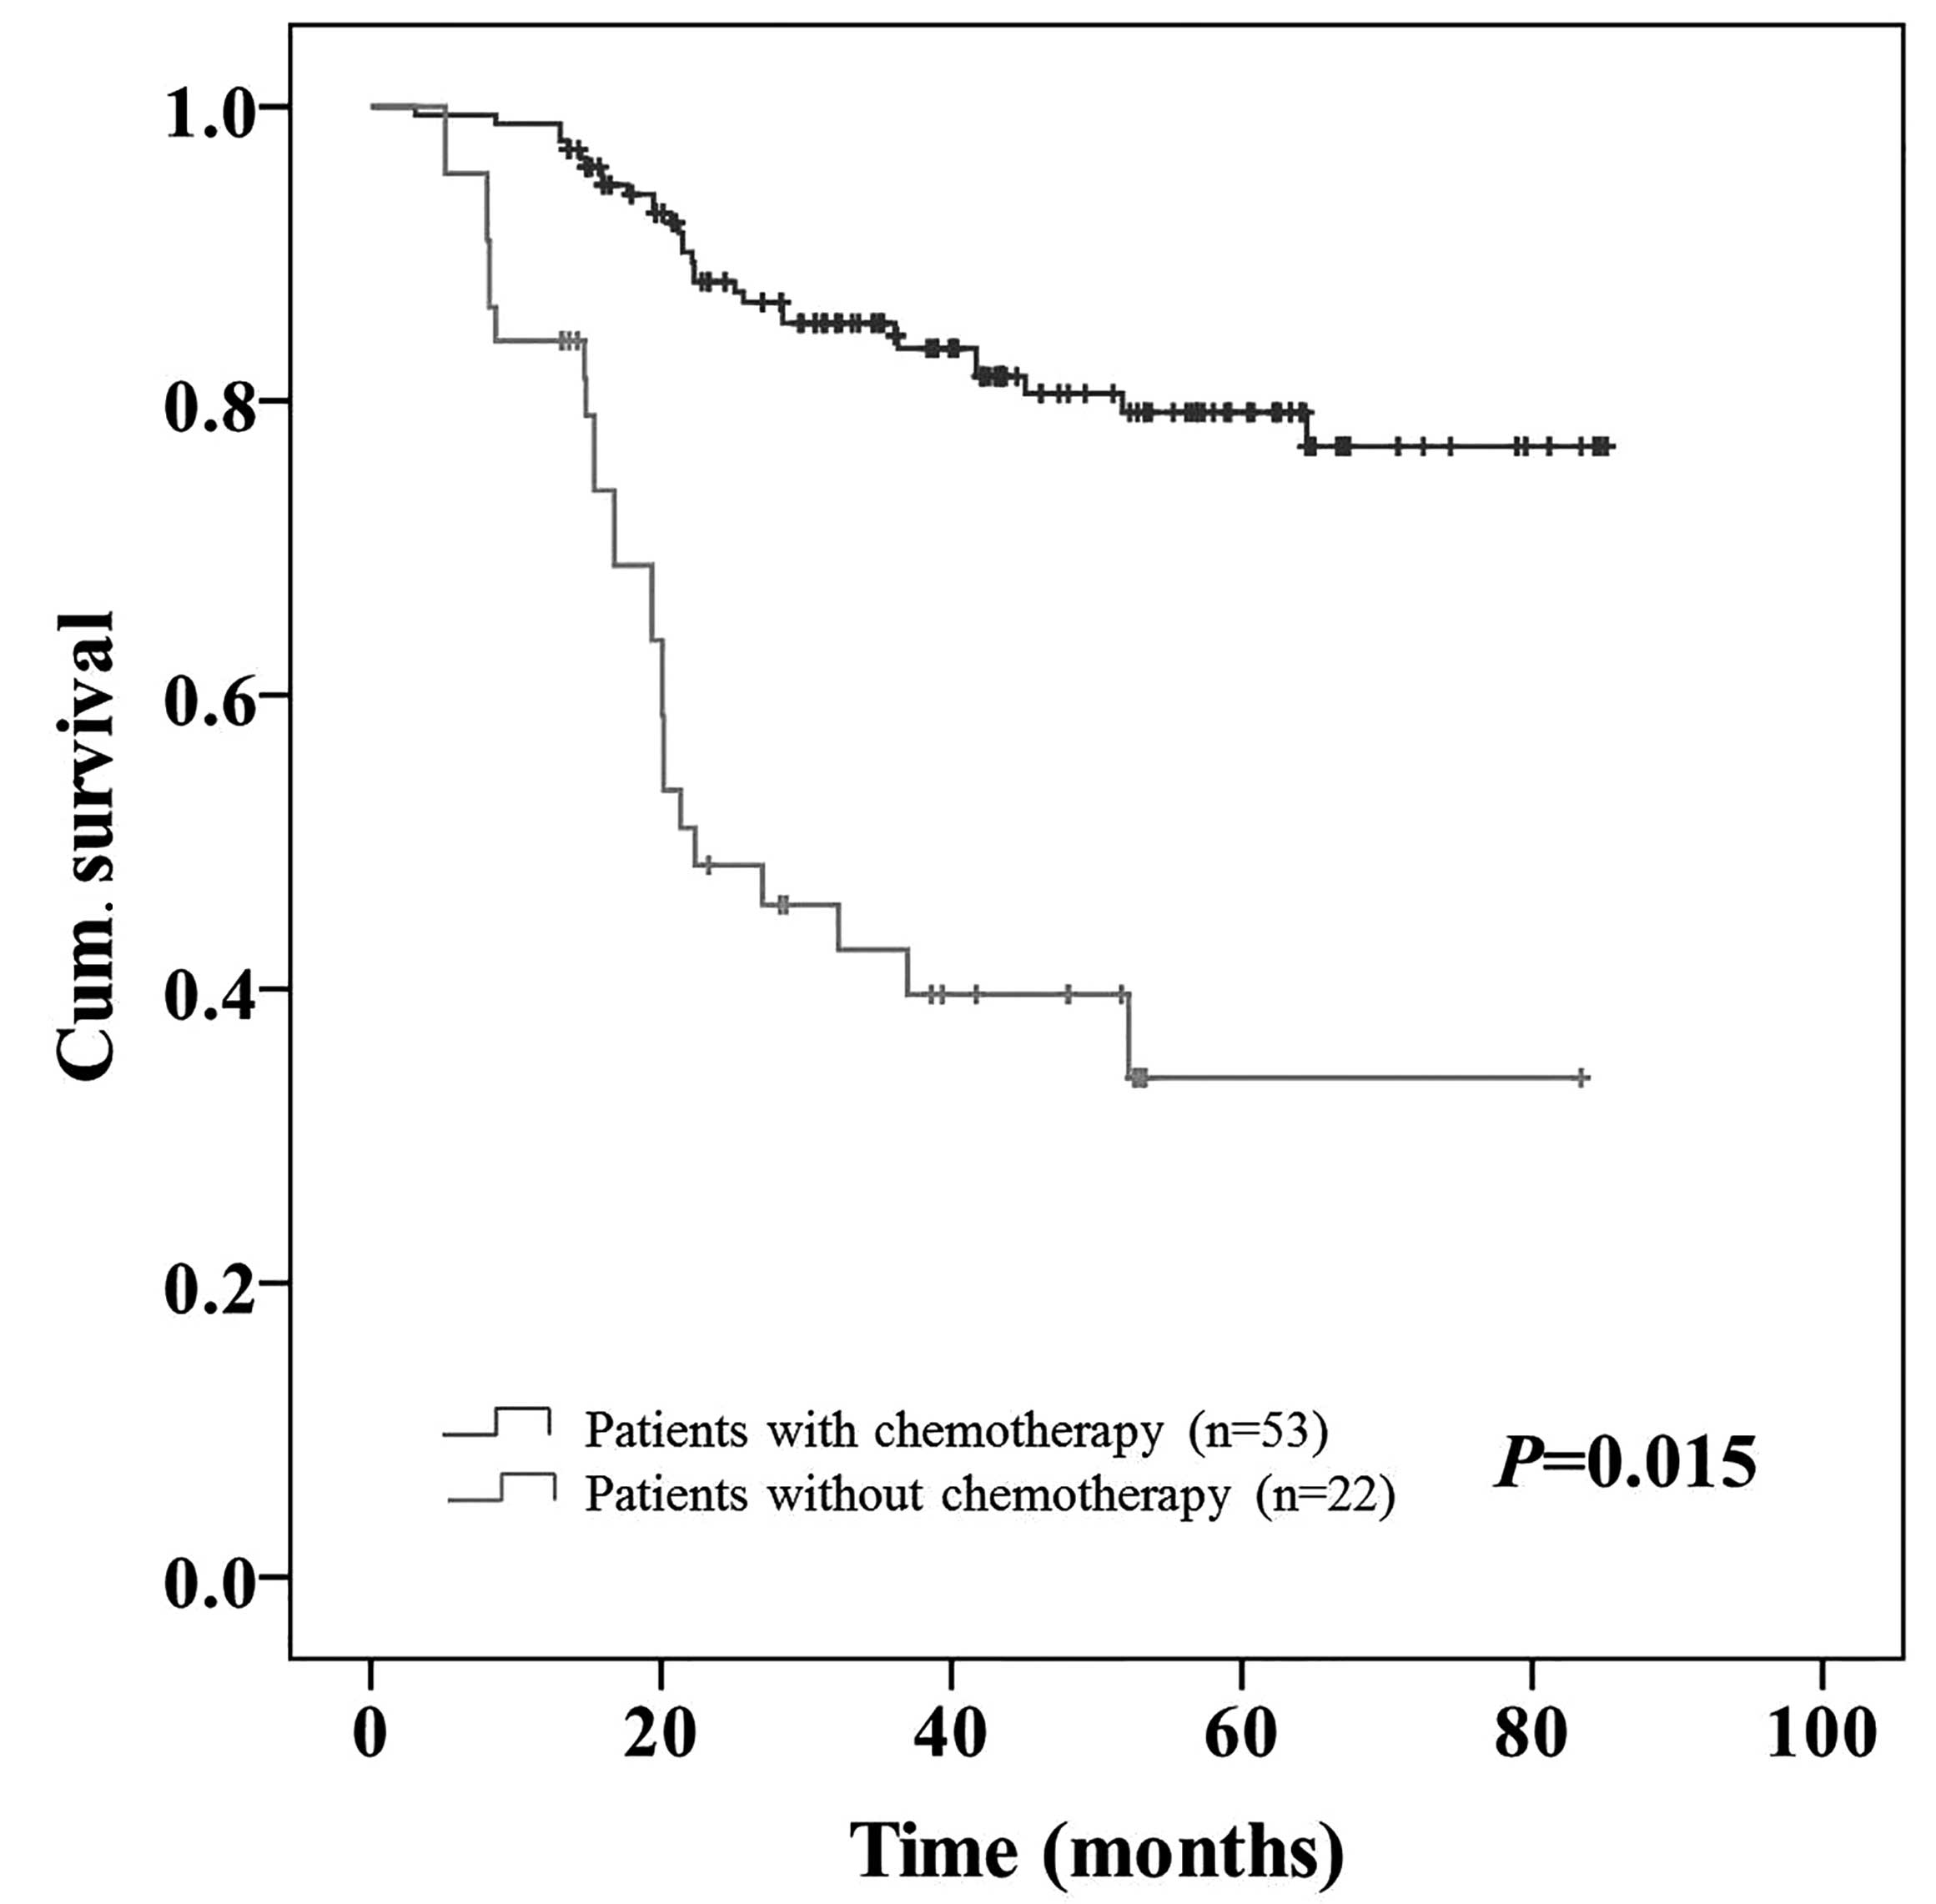 Clinical significance of pre-operative neutrophil lymphocyte